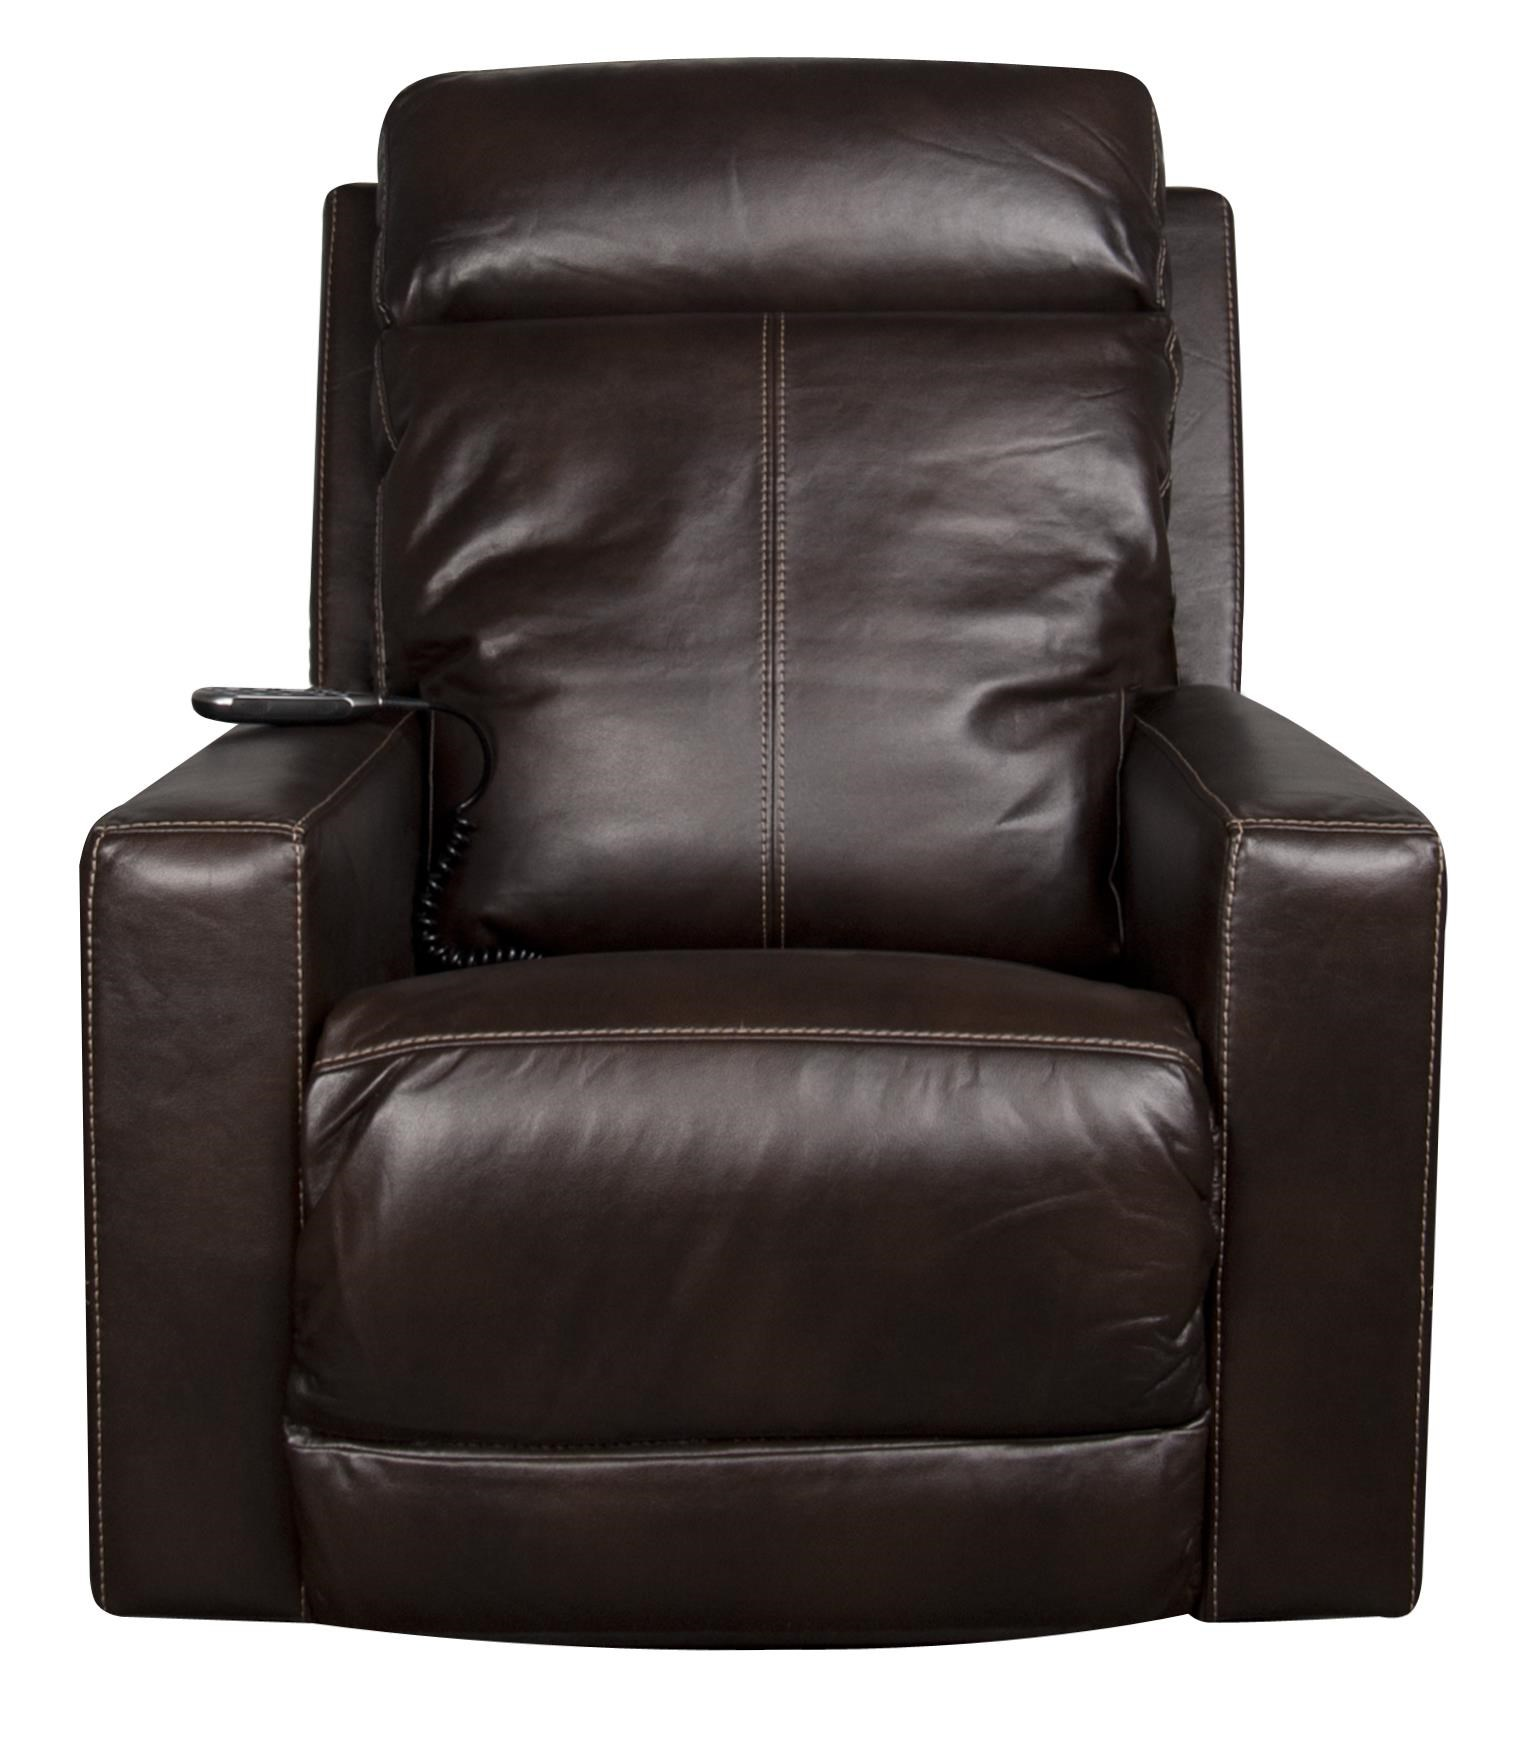 sc 1 st  Morris Furniture & La-Z-Boy Jax Power Rocker Recliner - Morris Home - Three Way Recliner islam-shia.org